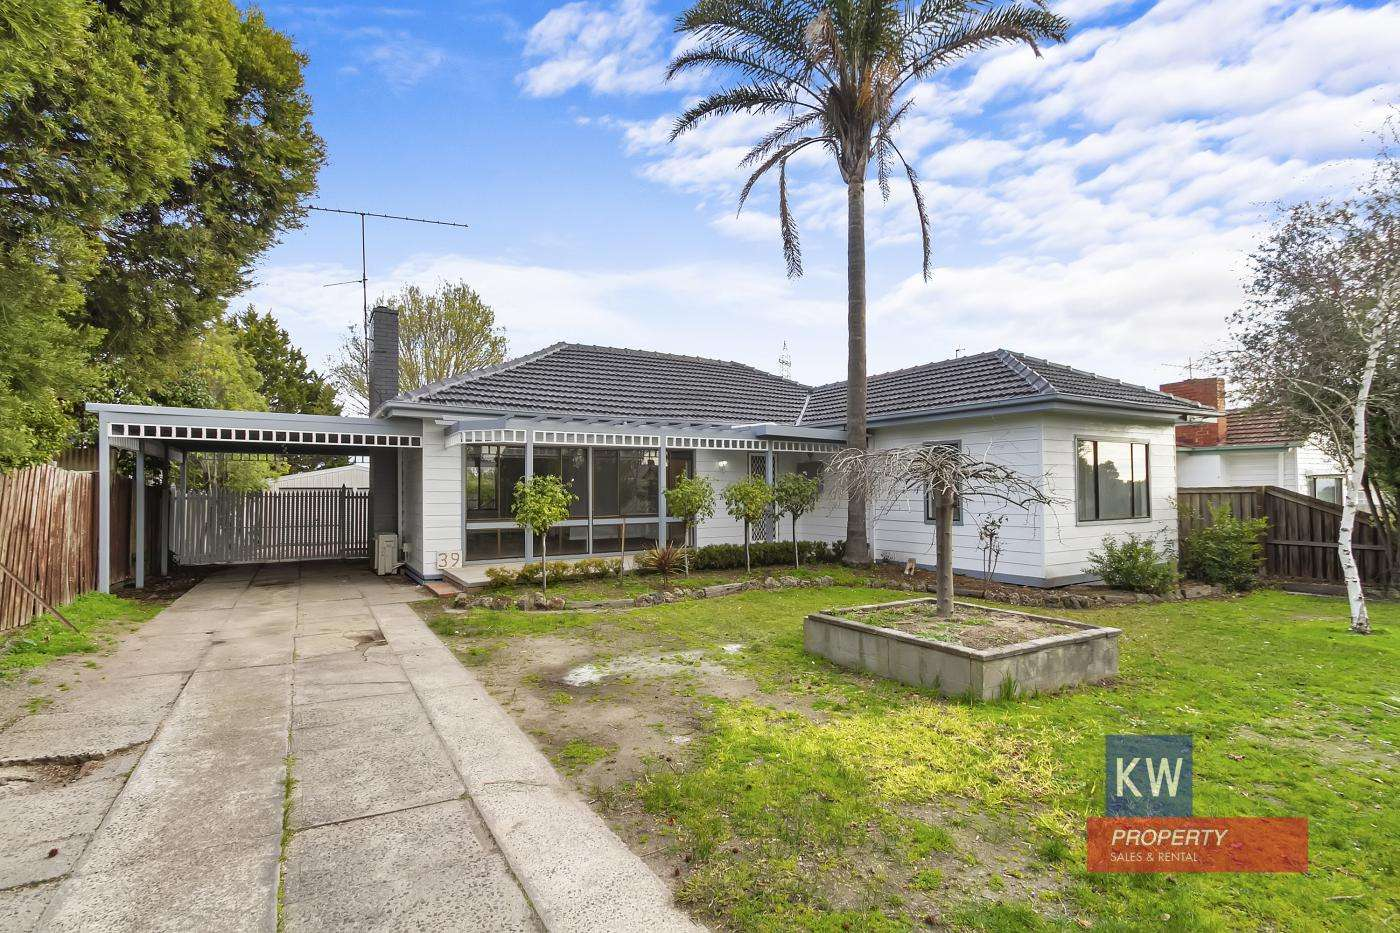 Main view of Homely house listing, 39 Langford Street, Morwell, VIC 3840